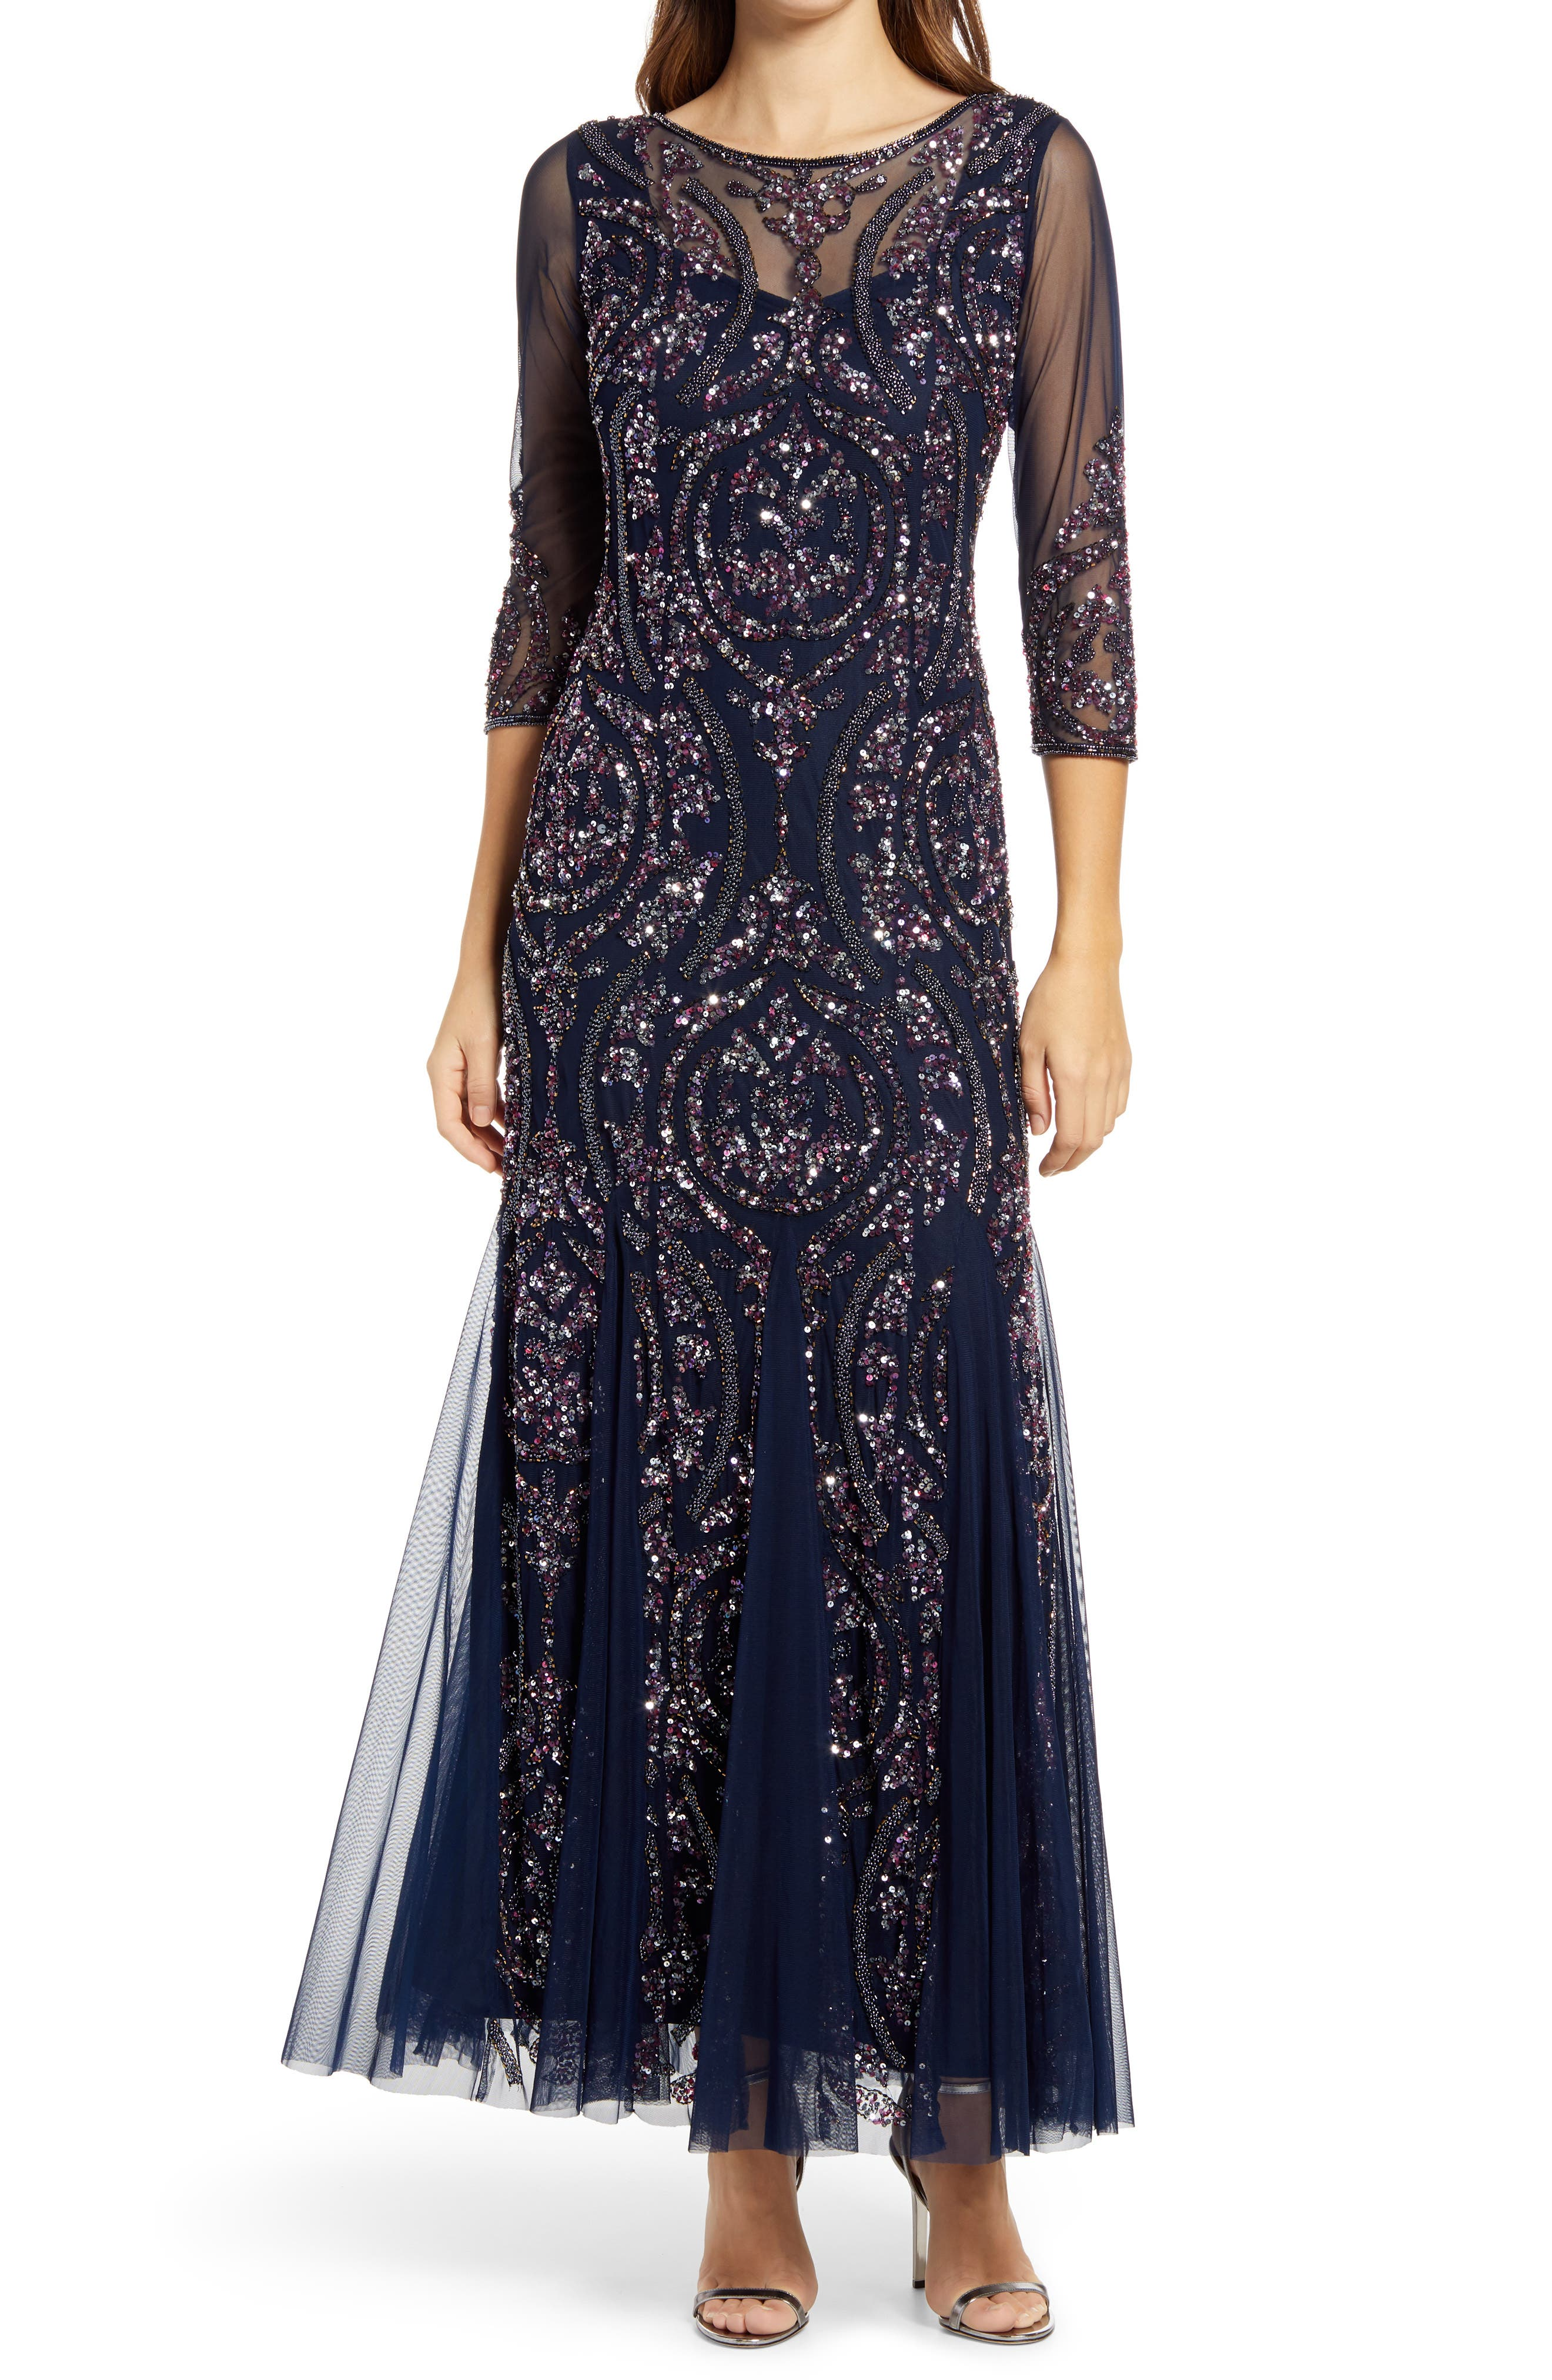 1920s Style Dresses, 20s Dresses Womens Pisarro Nights Sequin Beaded Illusion Gown Size 12 - Blue $124.00 AT vintagedancer.com